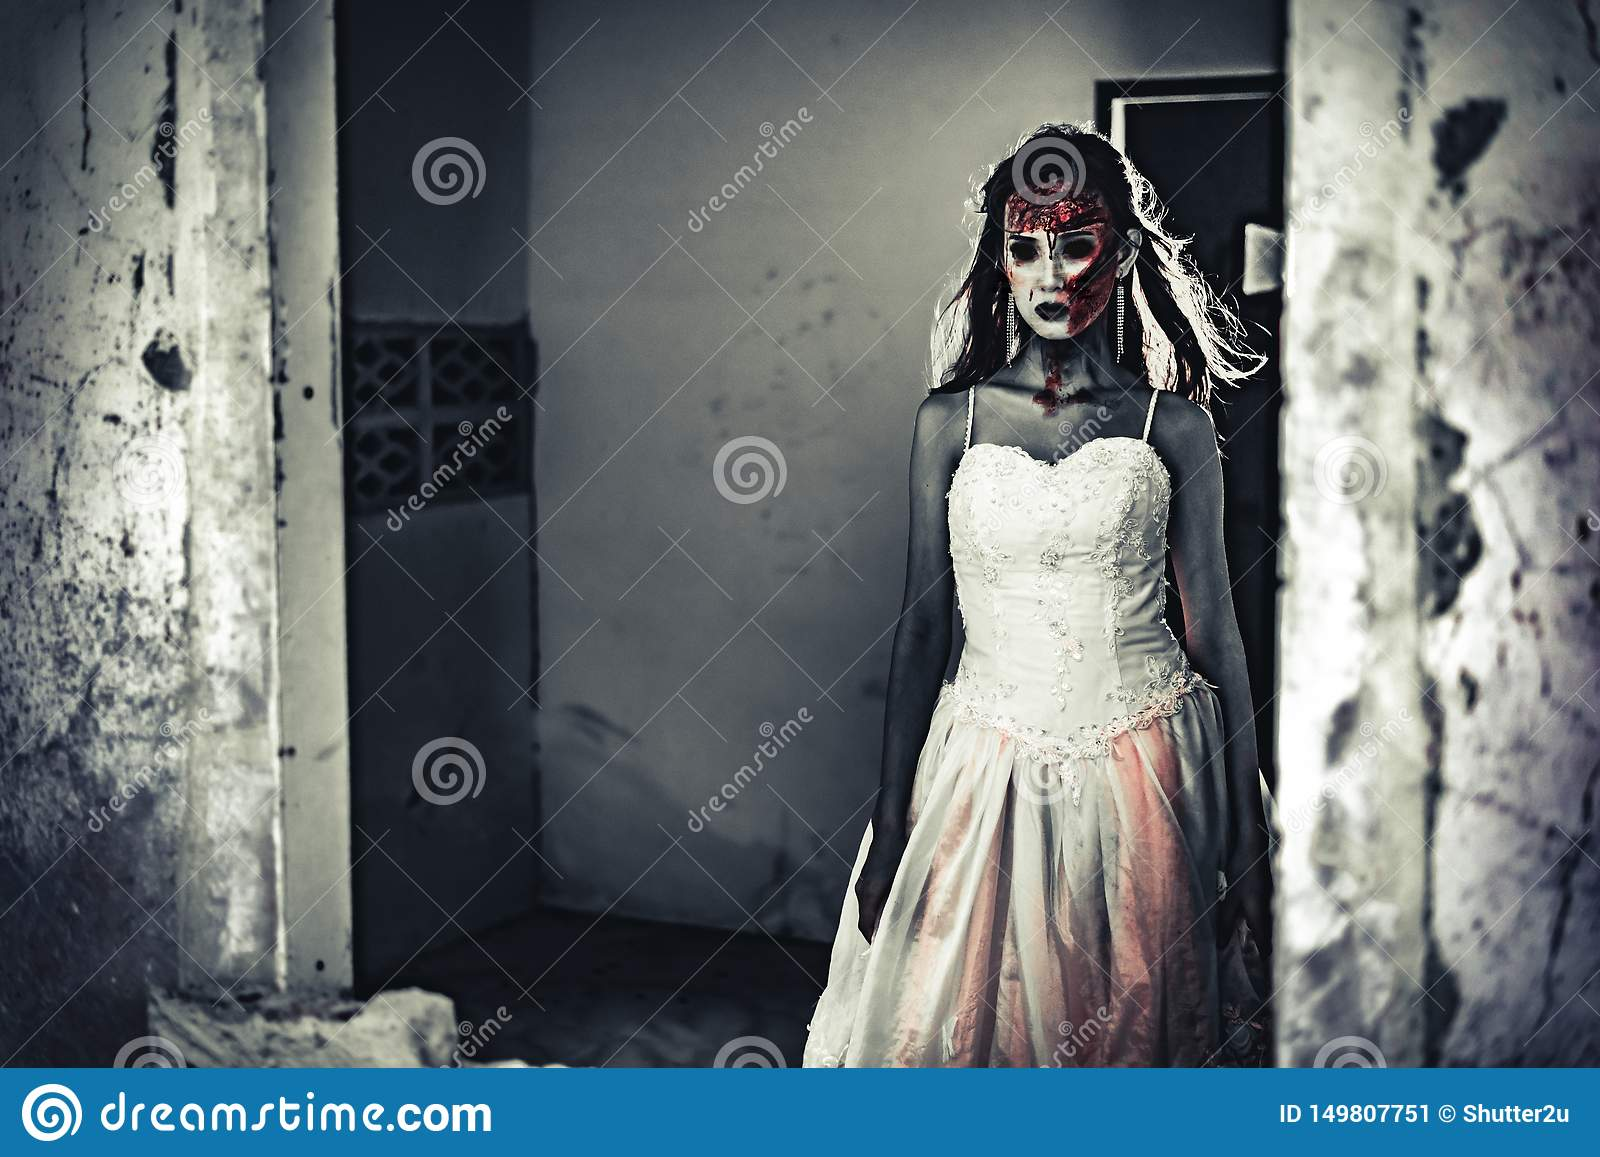 Female zombie corpse standing in front of grunge wall in abandoned house. Horror and Ghost concept. Halloween day festival and